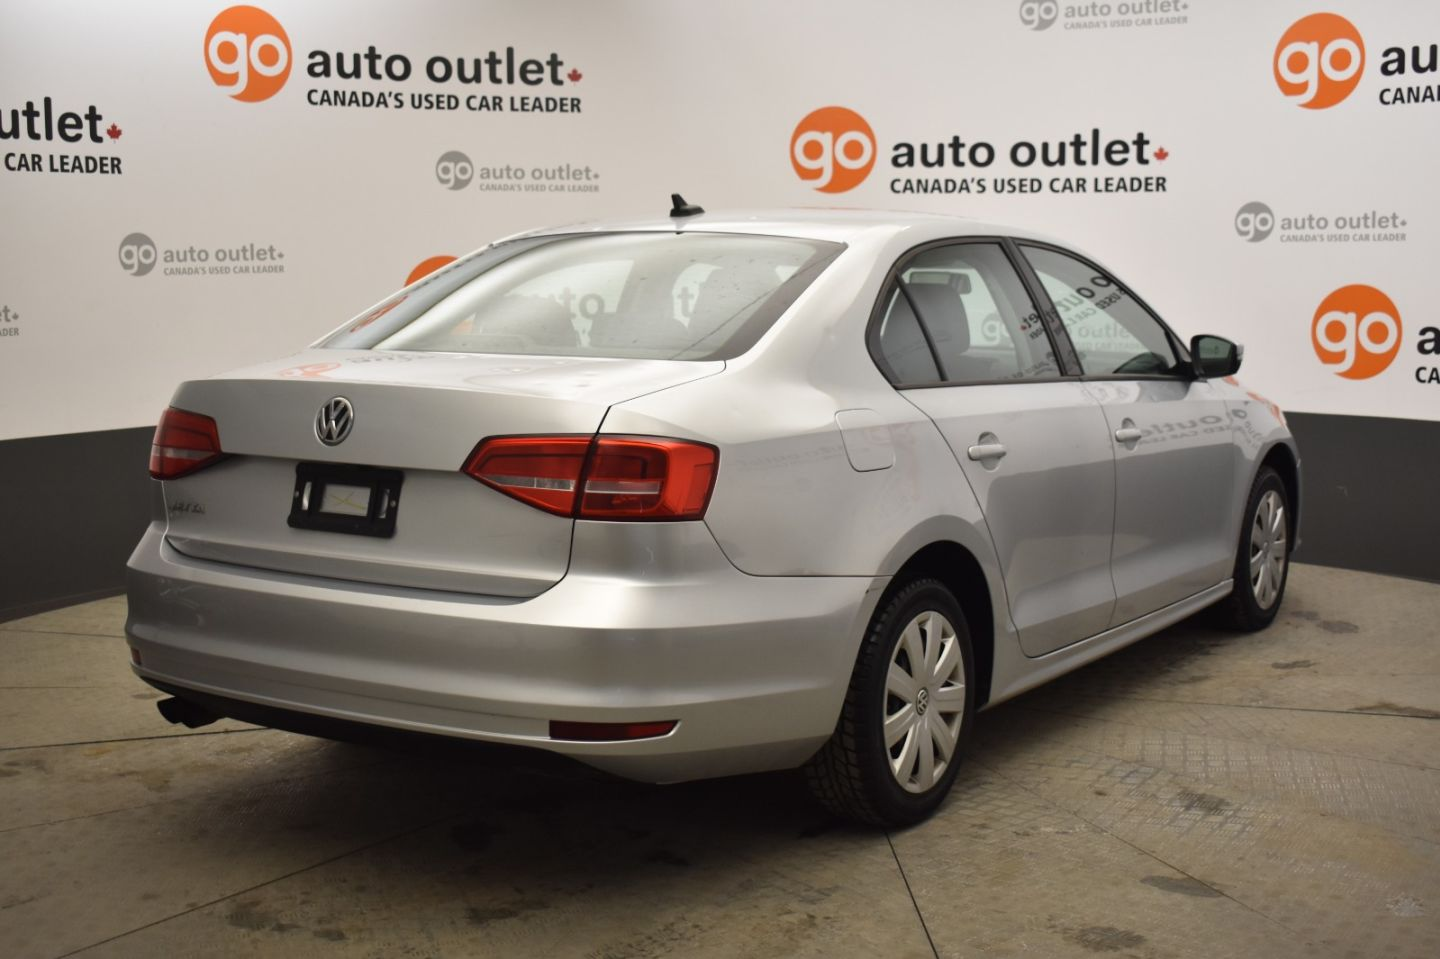 2015 Volkswagen Jetta Sedan Trendline+ for sale in Leduc, Alberta